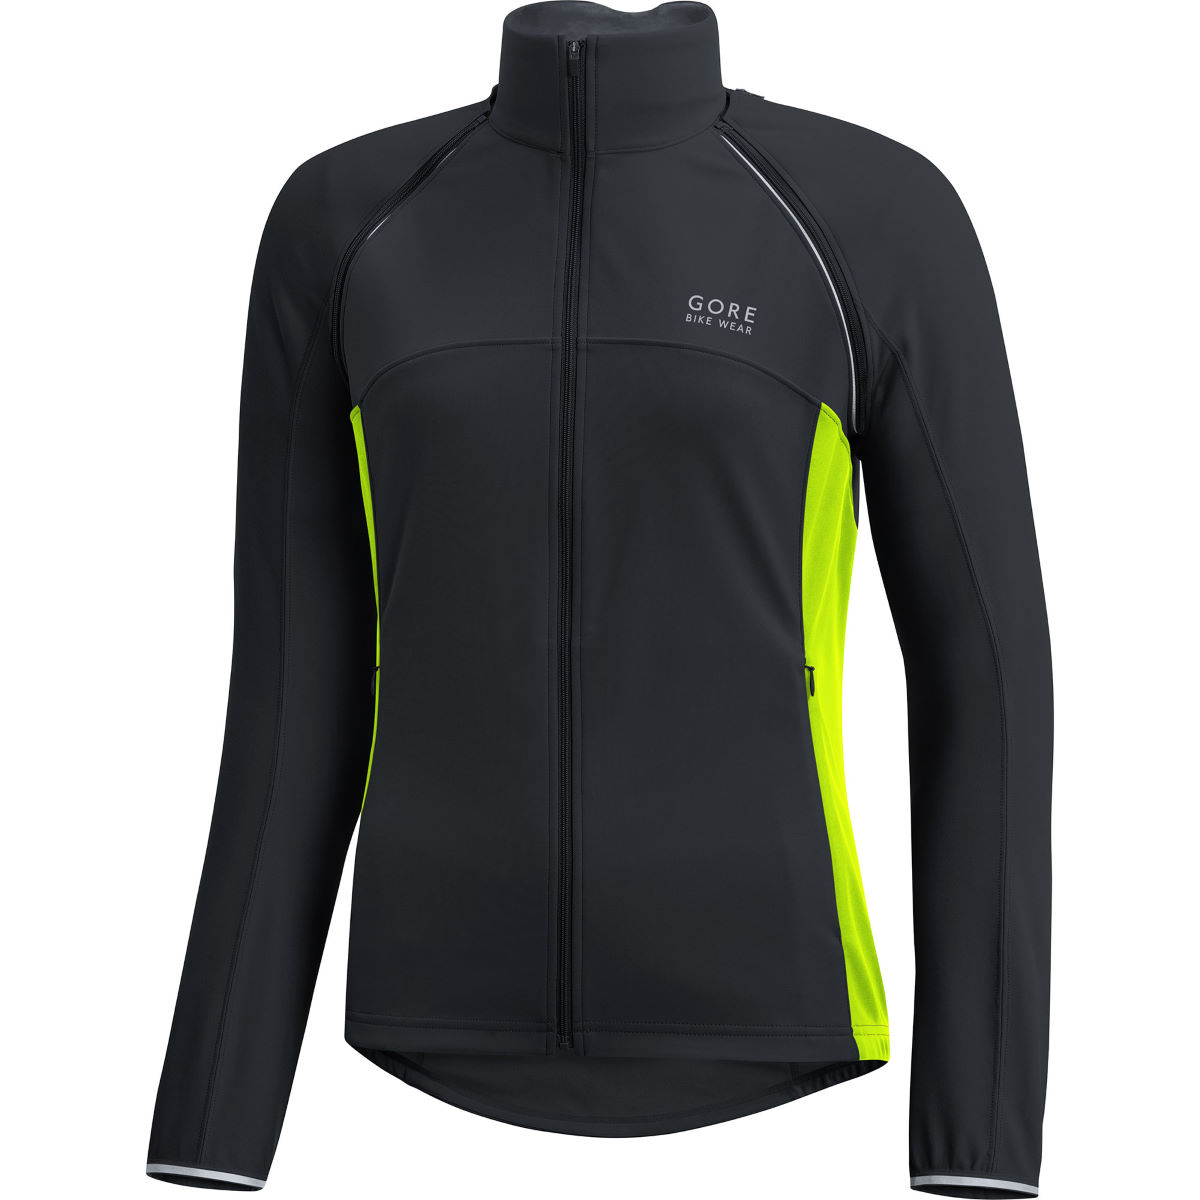 Veste Femme Gore Bike Wear Phantom Windstopper (fermeture zippée) - XS